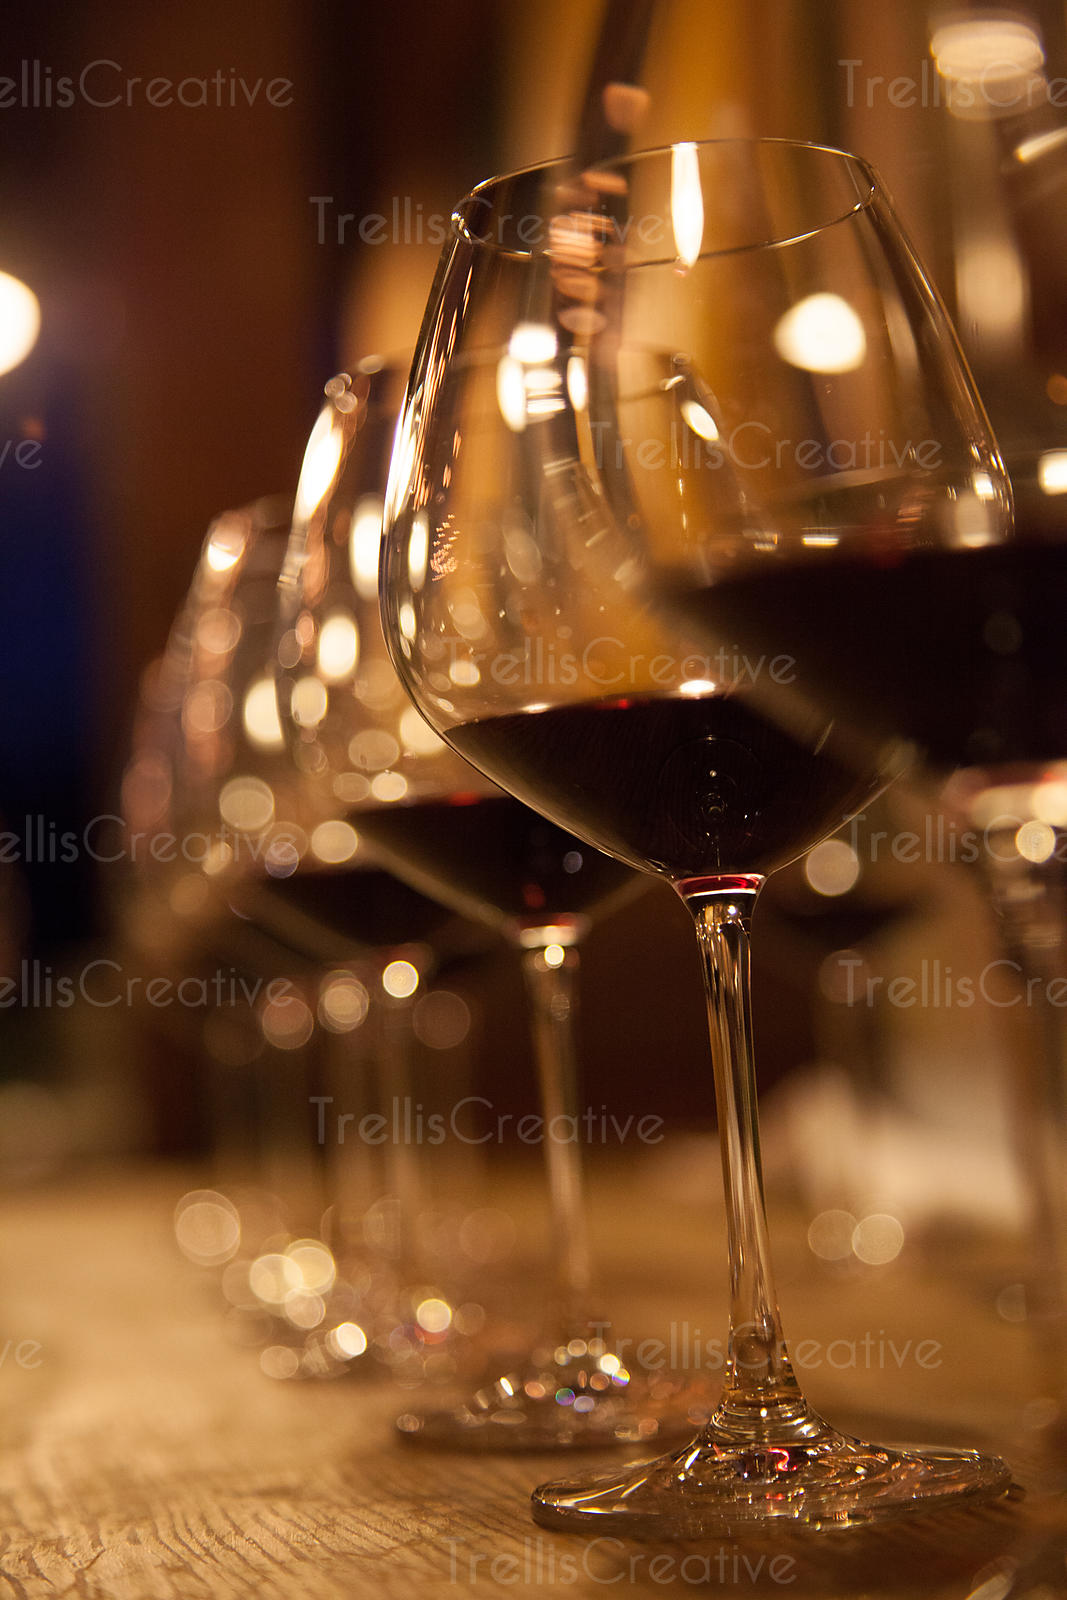 A neat row of wine glasses with red wine.